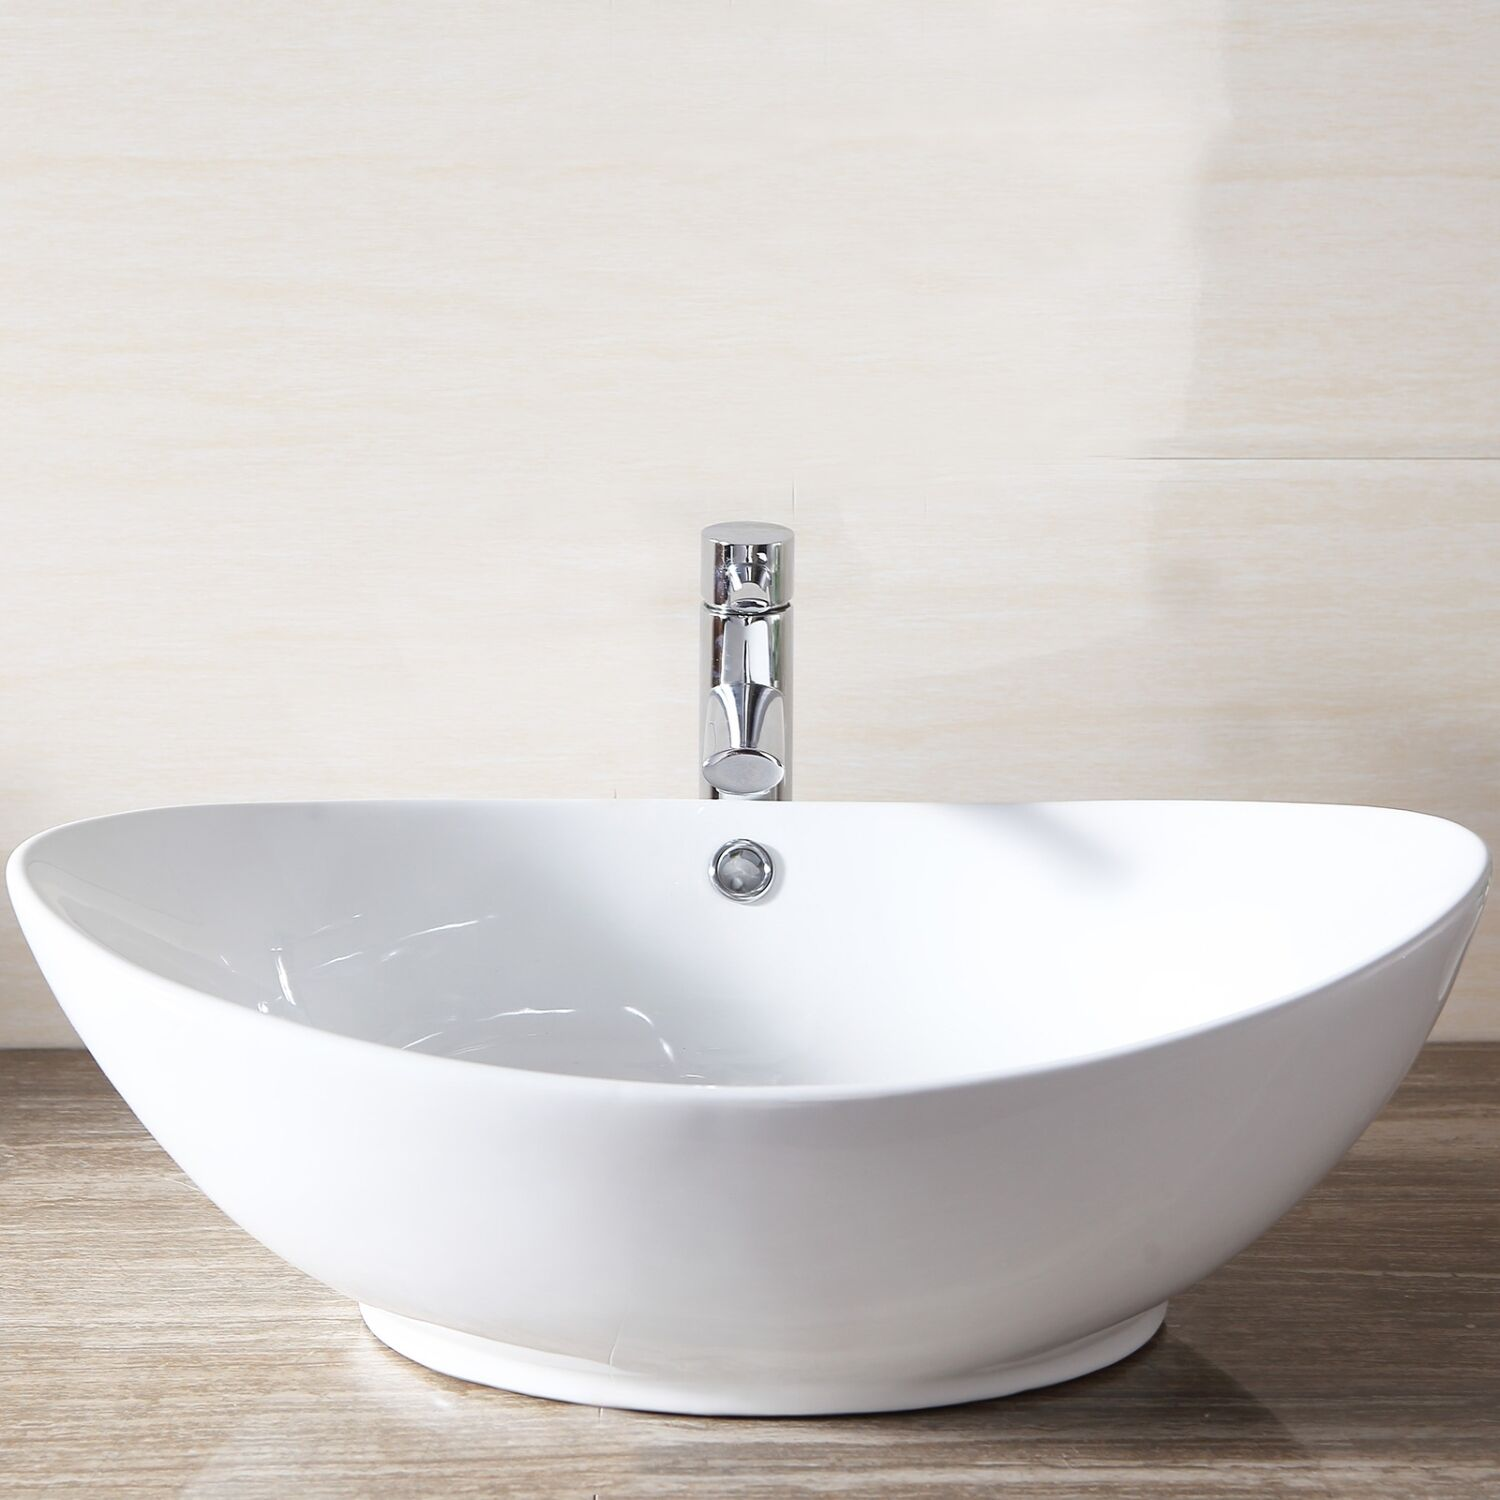 bowl sinks for bathrooms bathroom porcelain ceramic sink vessel vanity basin bowl 17495 | $ 57